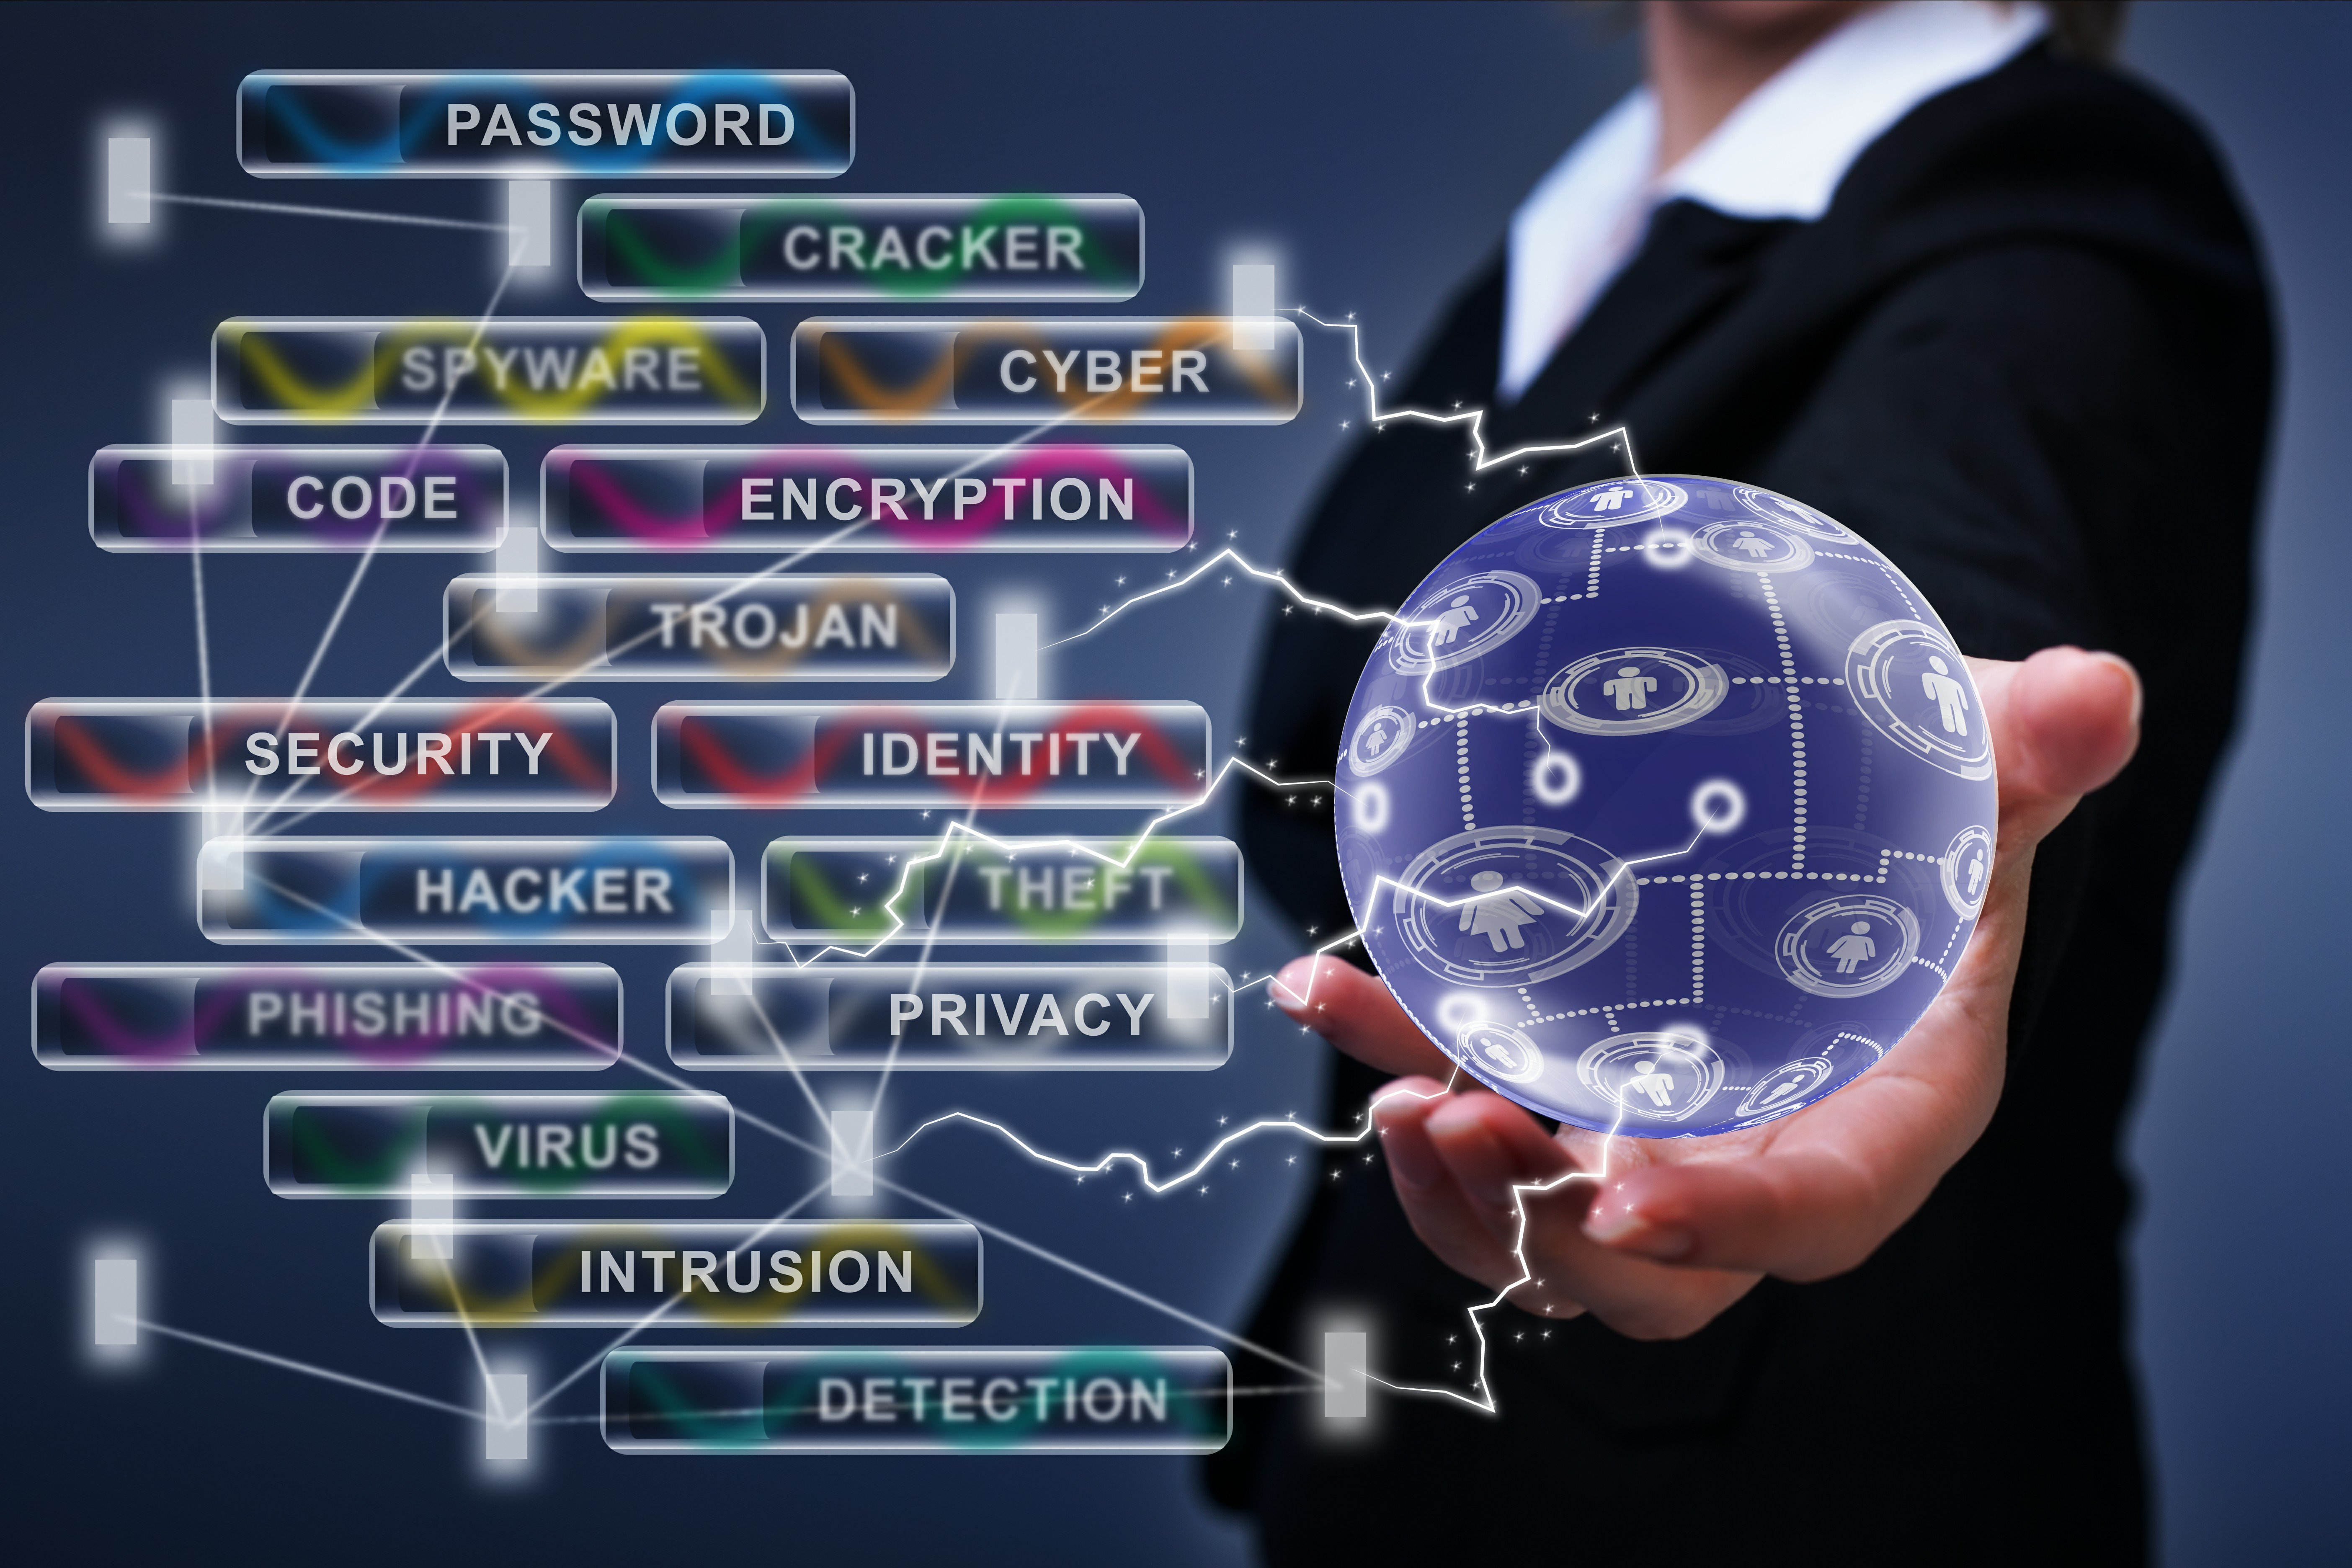 Cyber Security Graphic - Cyber Security Analysts from Global IT Services